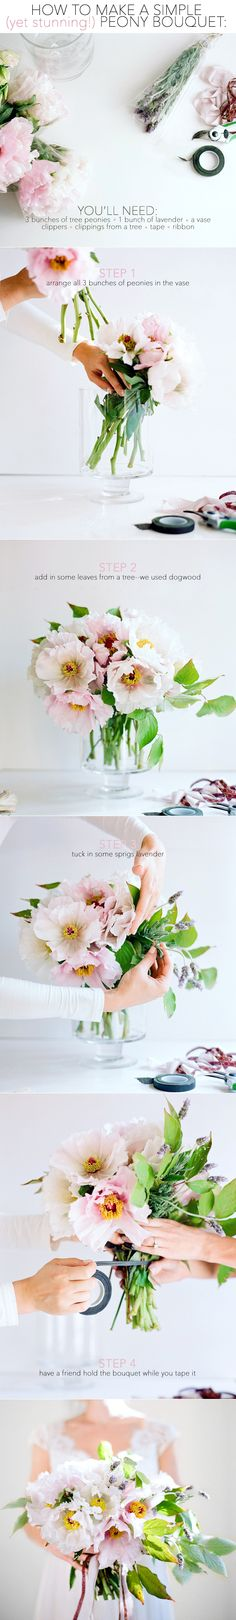 diy wedding peony bouquet tutorial via once wed